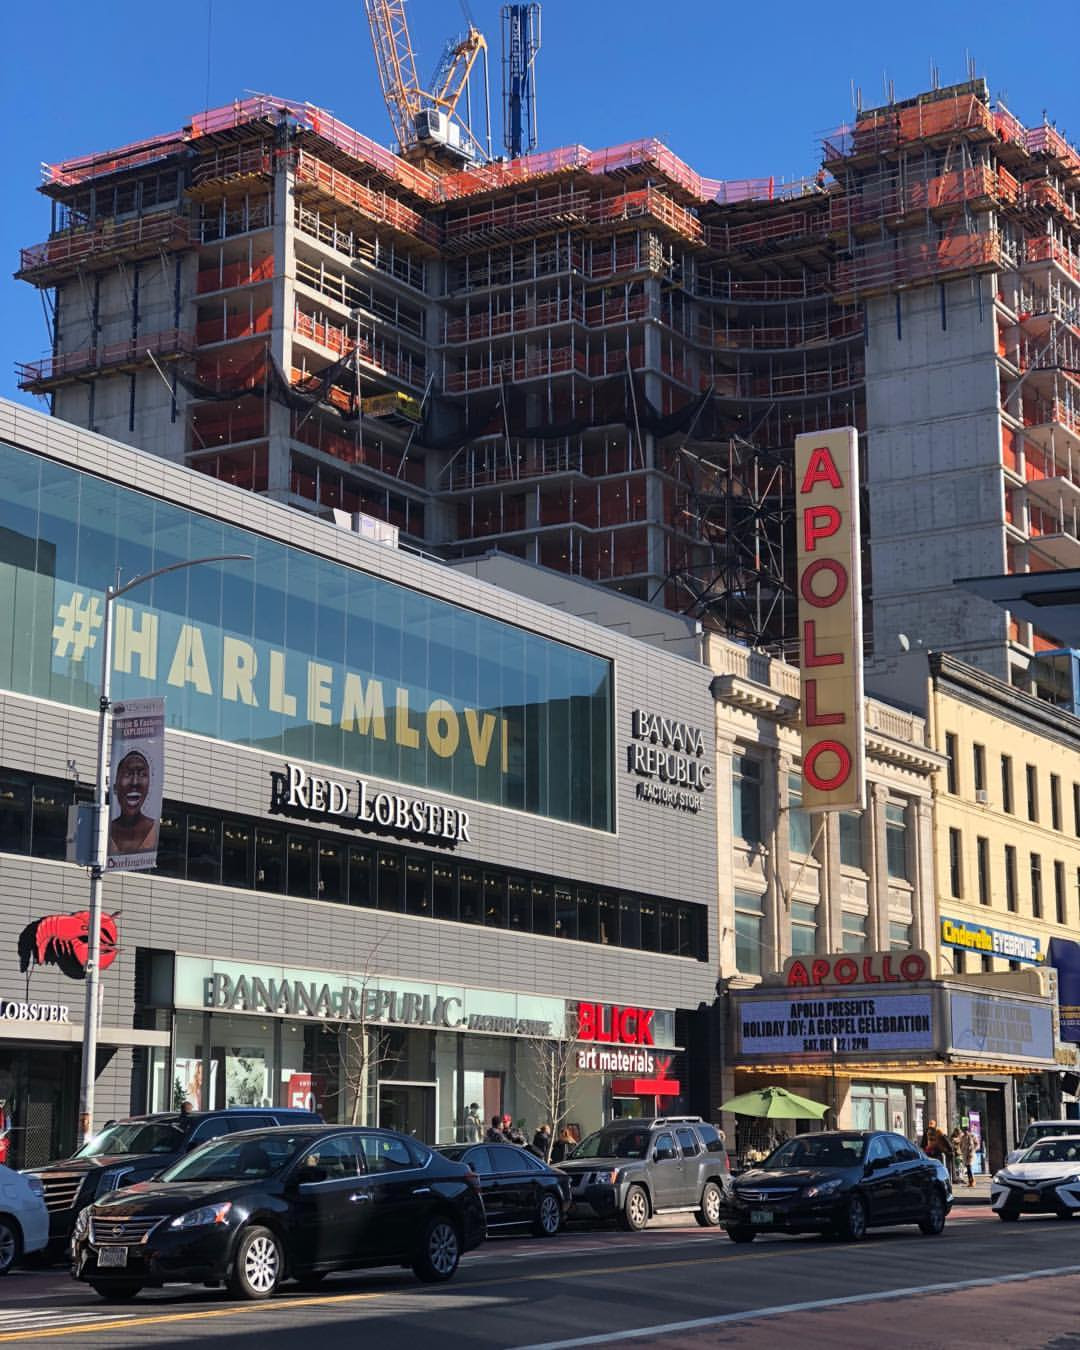 The Apollo Theater standing amongst the giants who are trying to swallow her. Is it truly #HARLEMLOVE